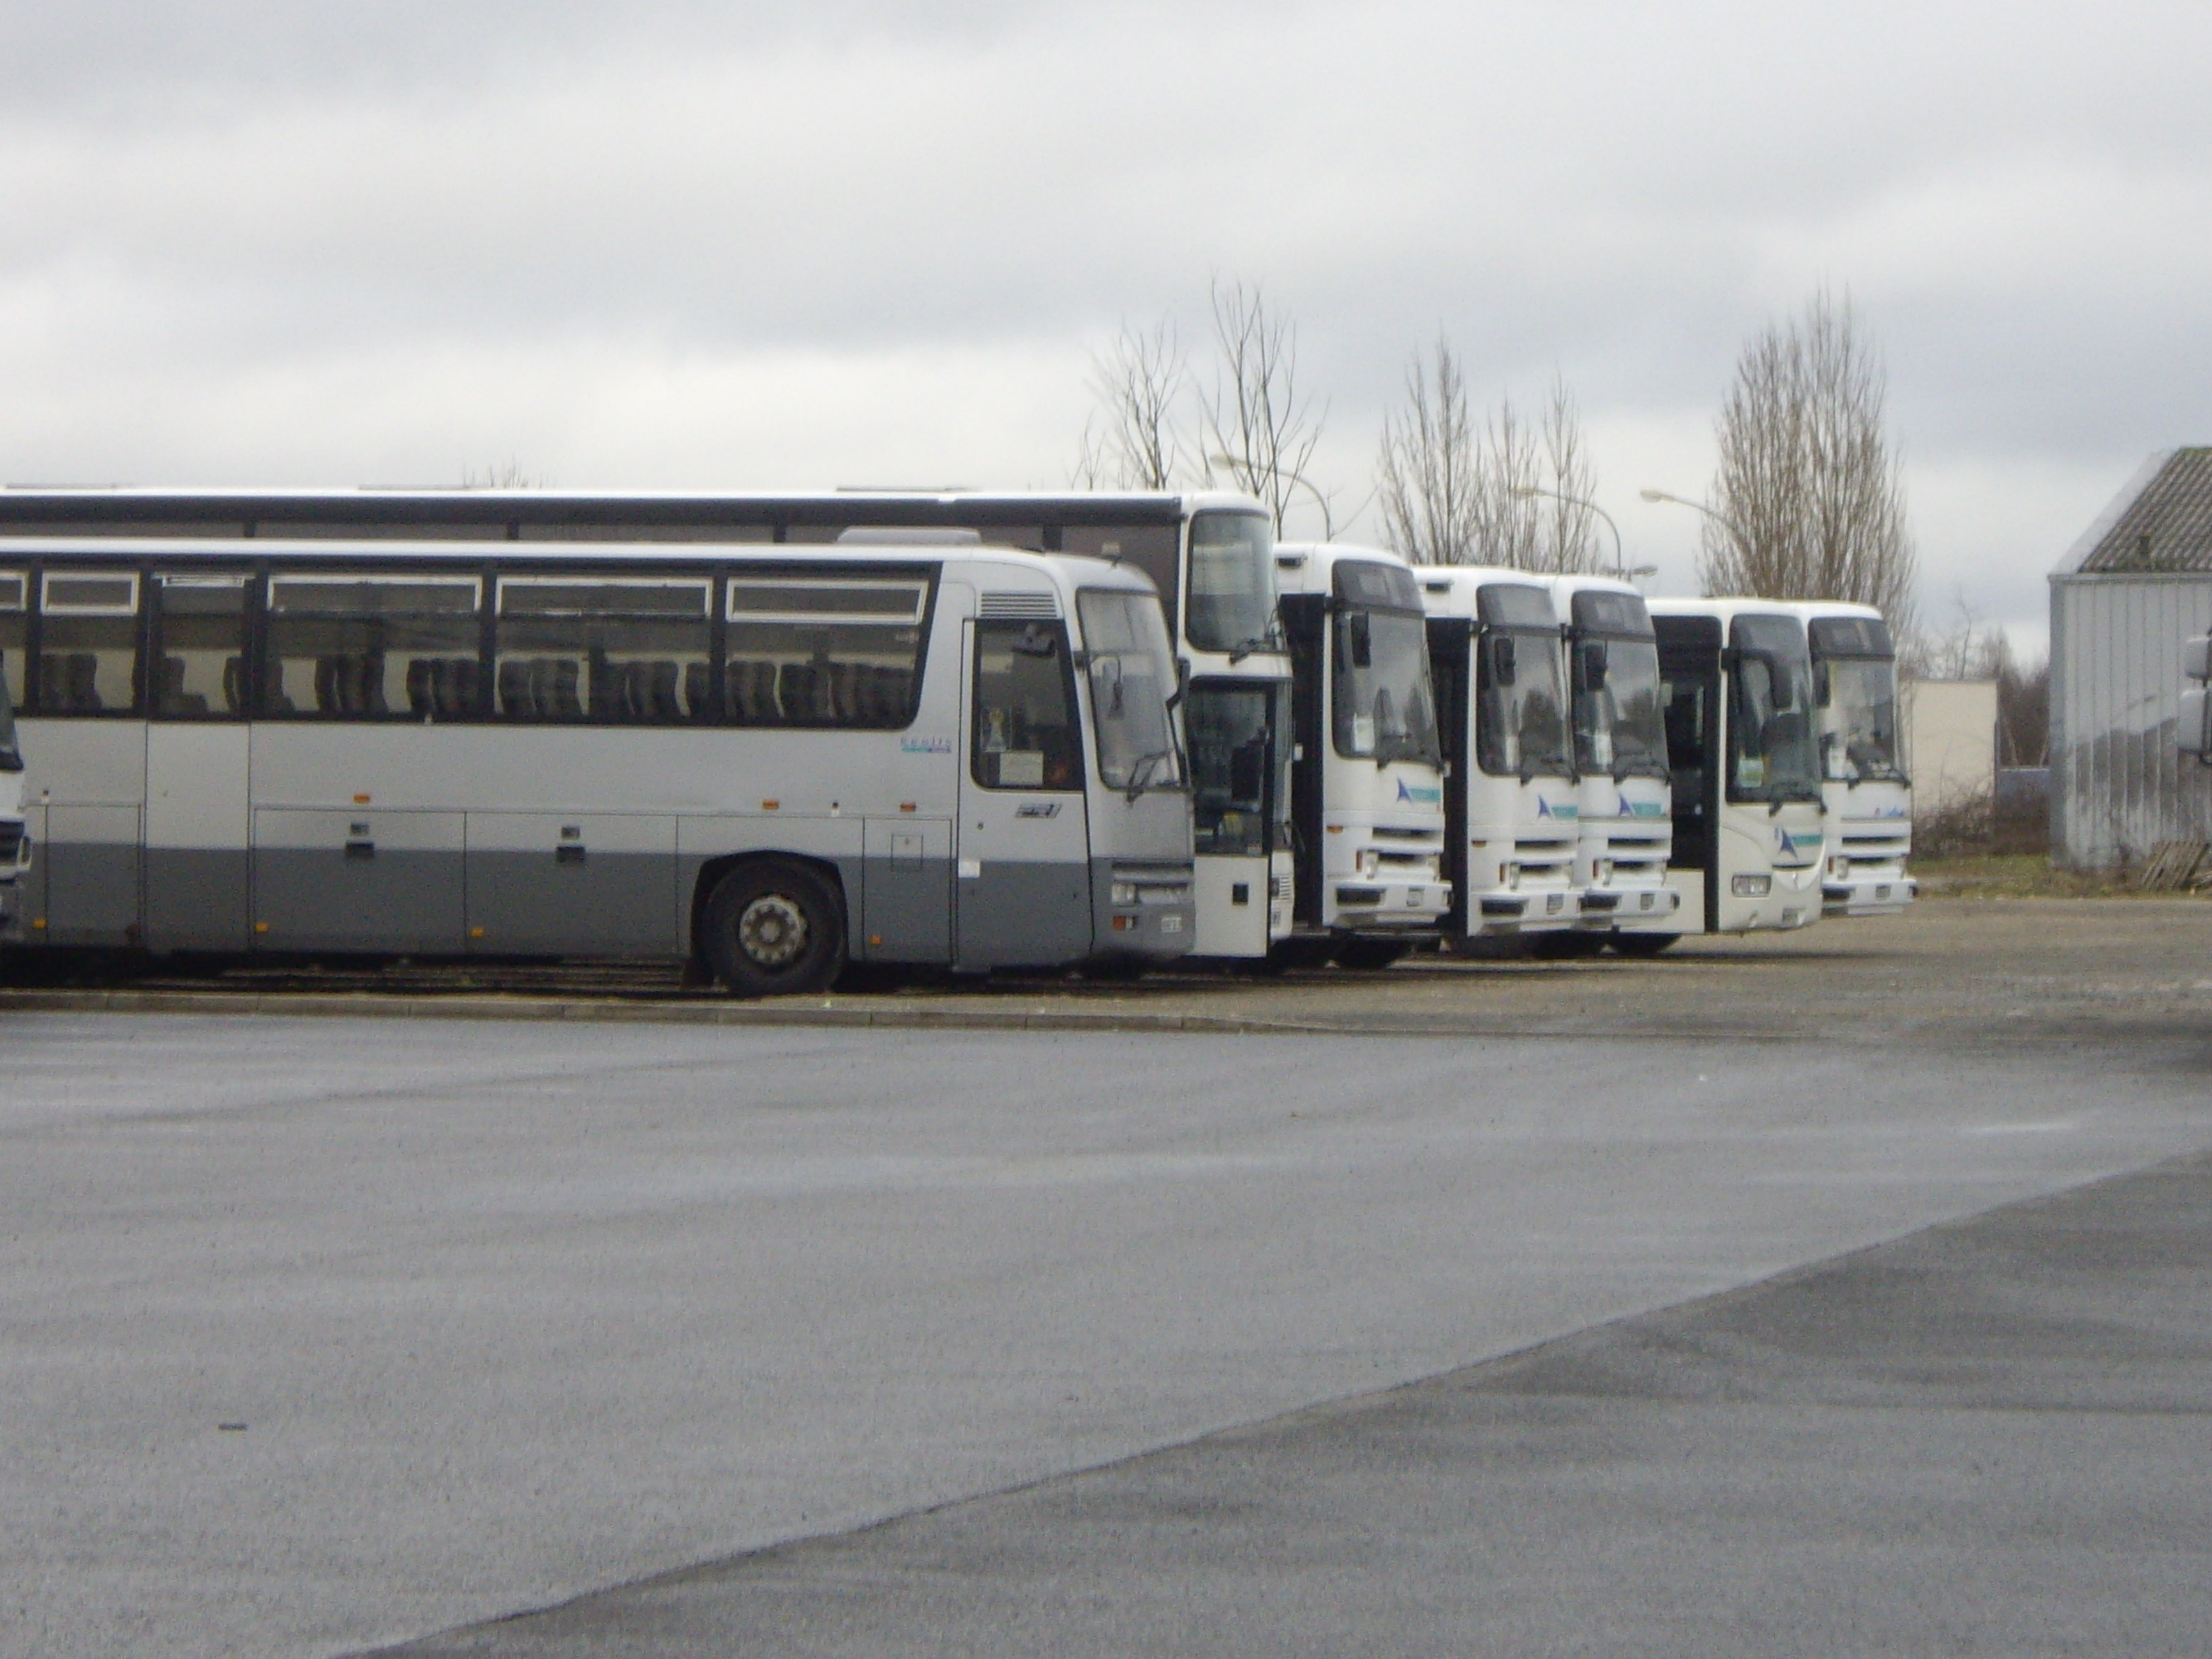 cars renault tracer fr1 et van hool 21 janvier 2012. Black Bedroom Furniture Sets. Home Design Ideas